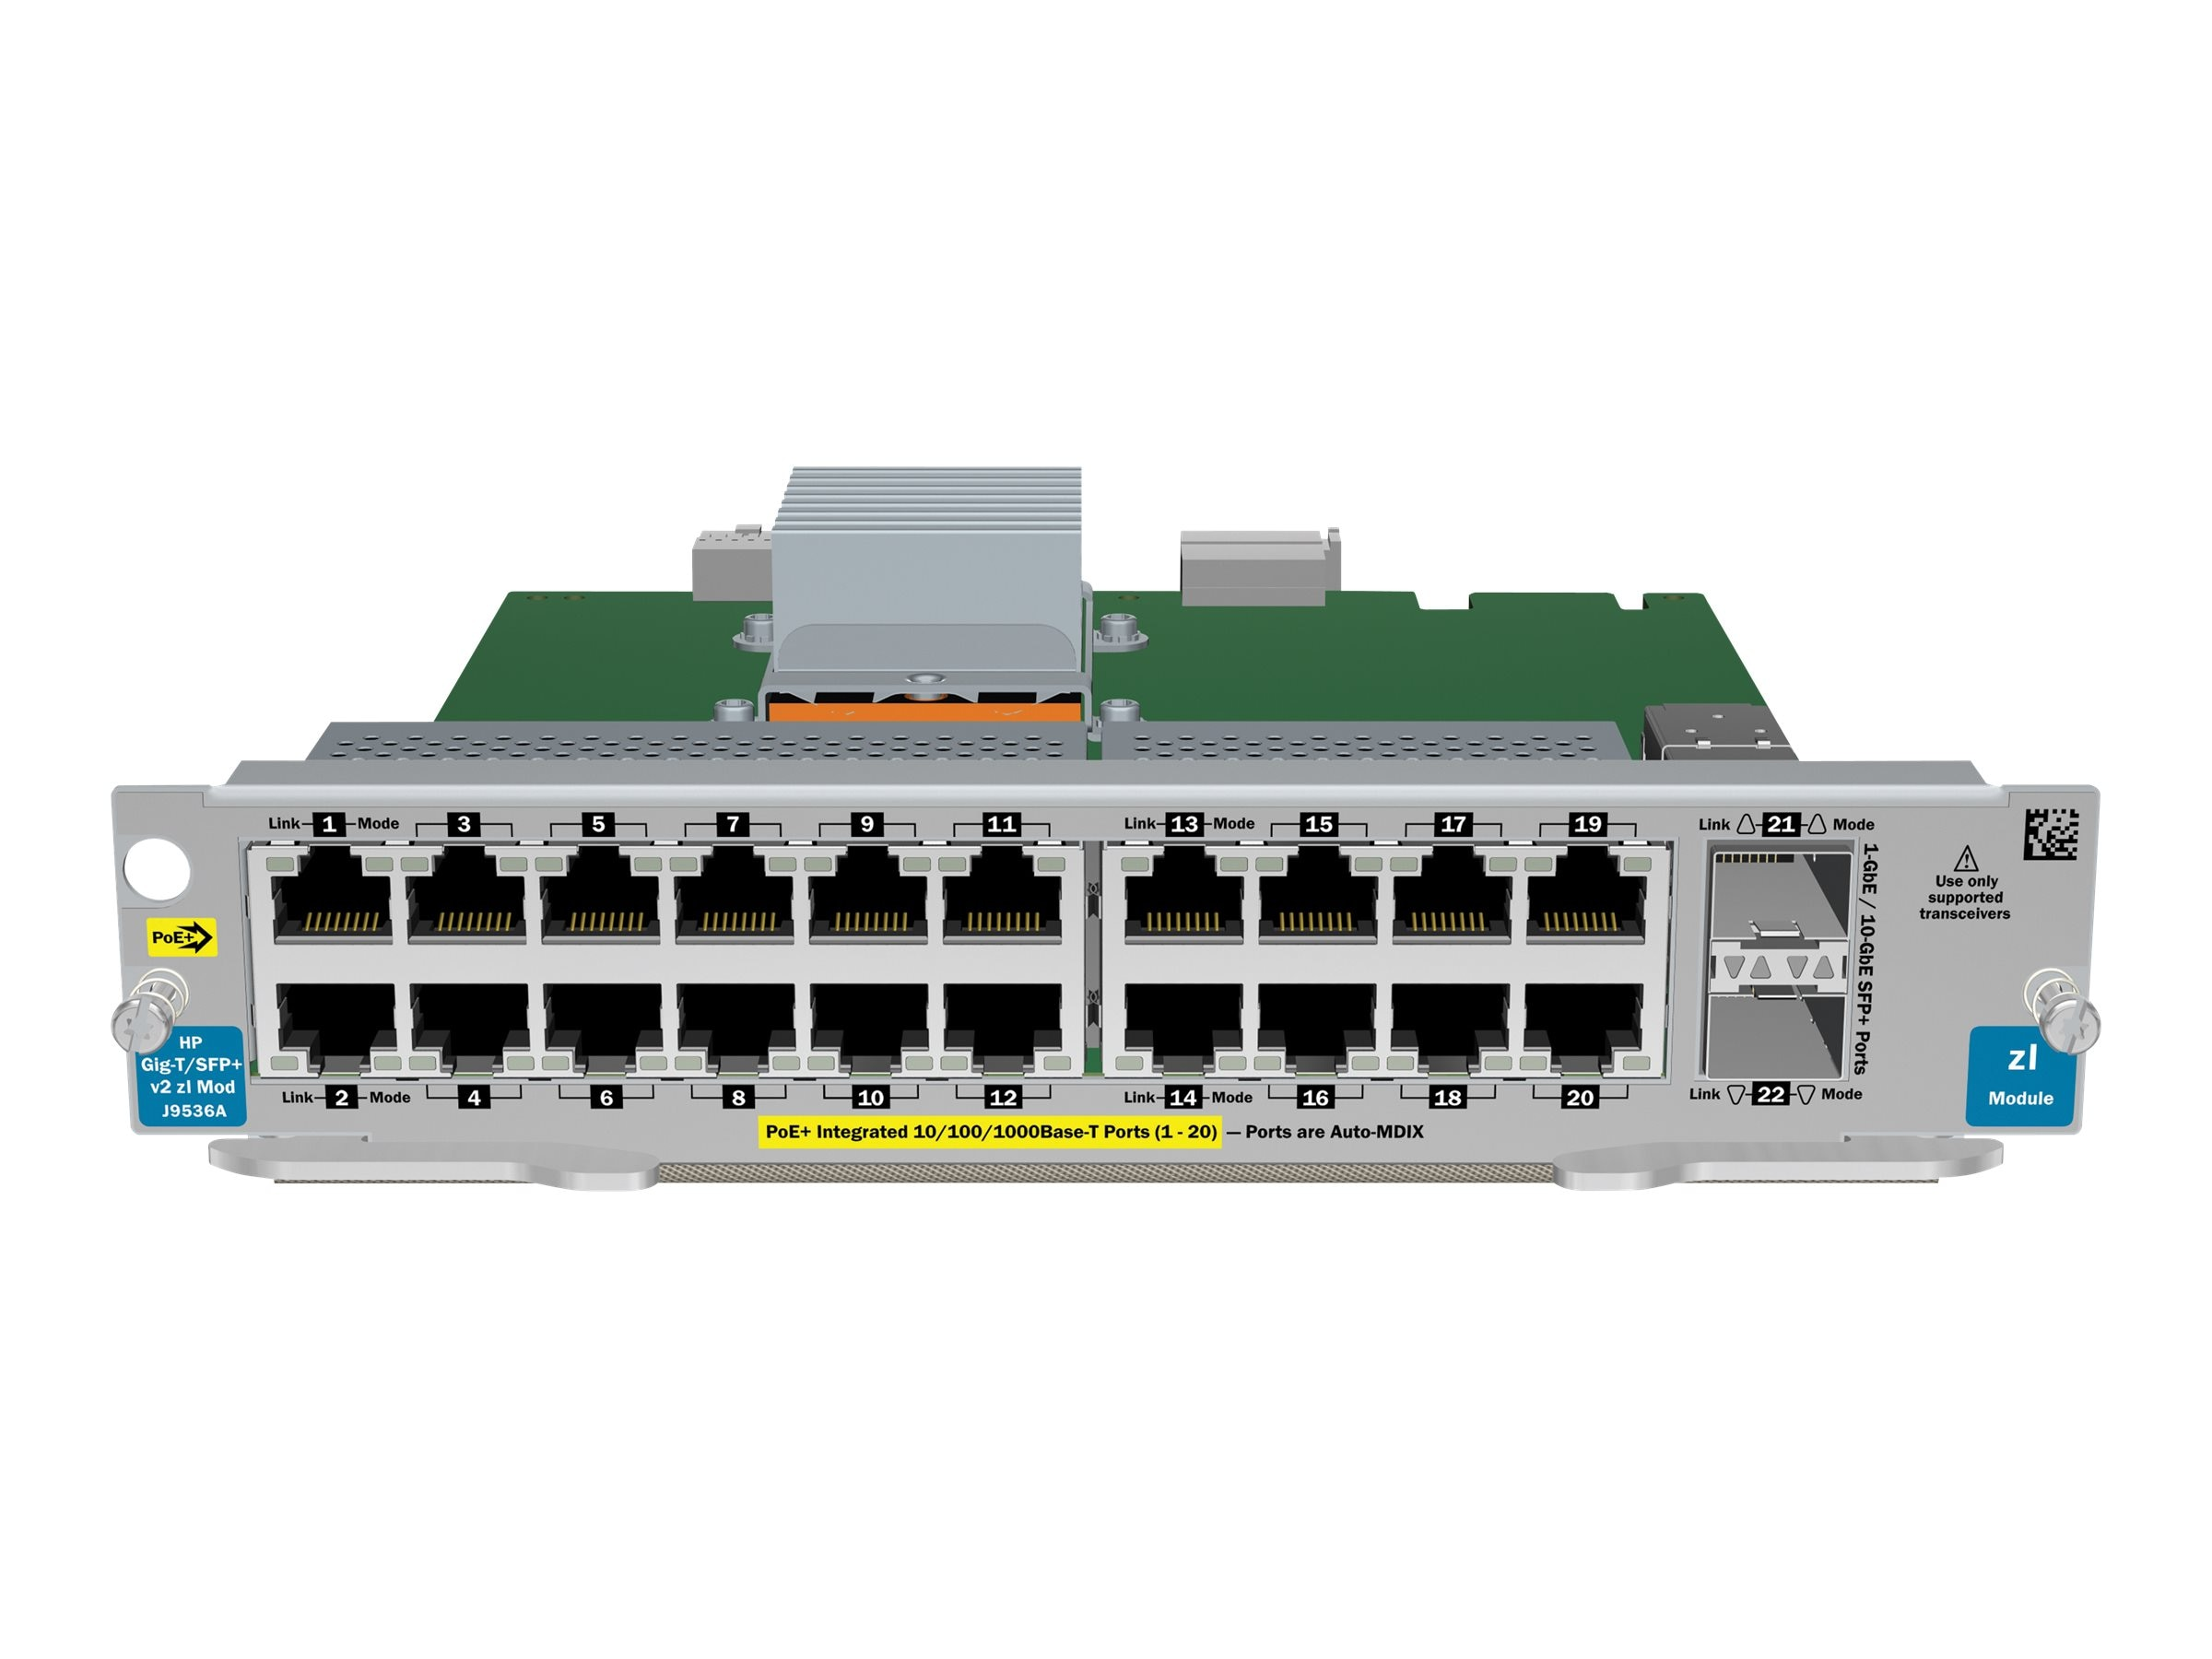 HPE 20-Port Gig-T PoE+ Module w 2-Port 10GbE SFP+ v2 zl, J9536A, 12229961, Network Device Modules & Accessories